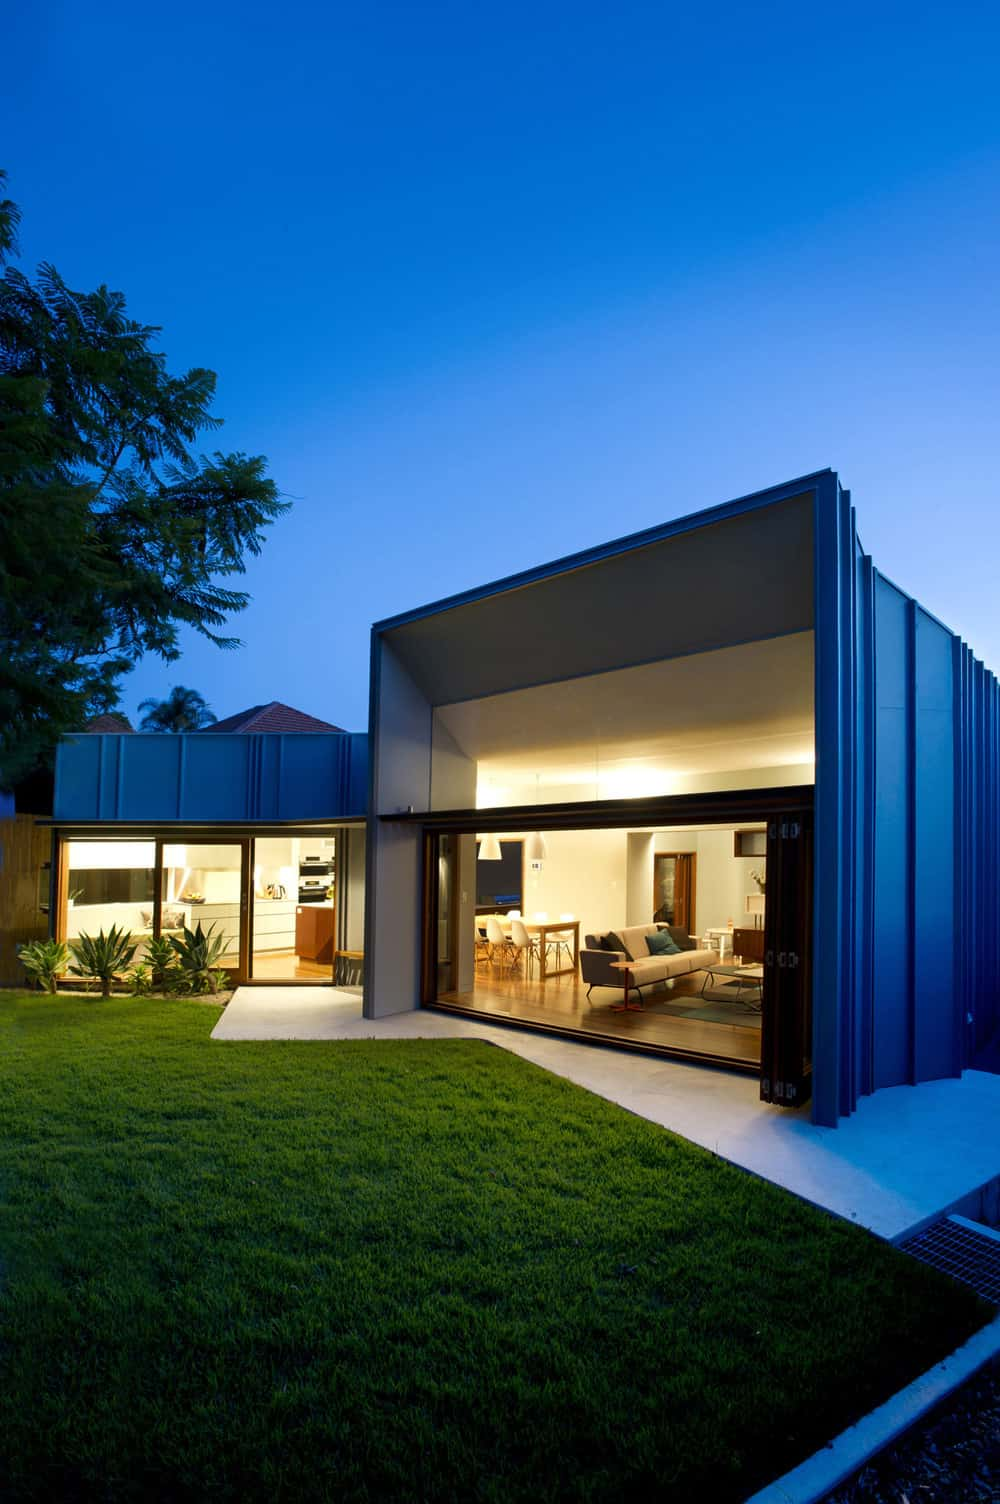 The 2012 Houses Awards: Smith house by David Boyle